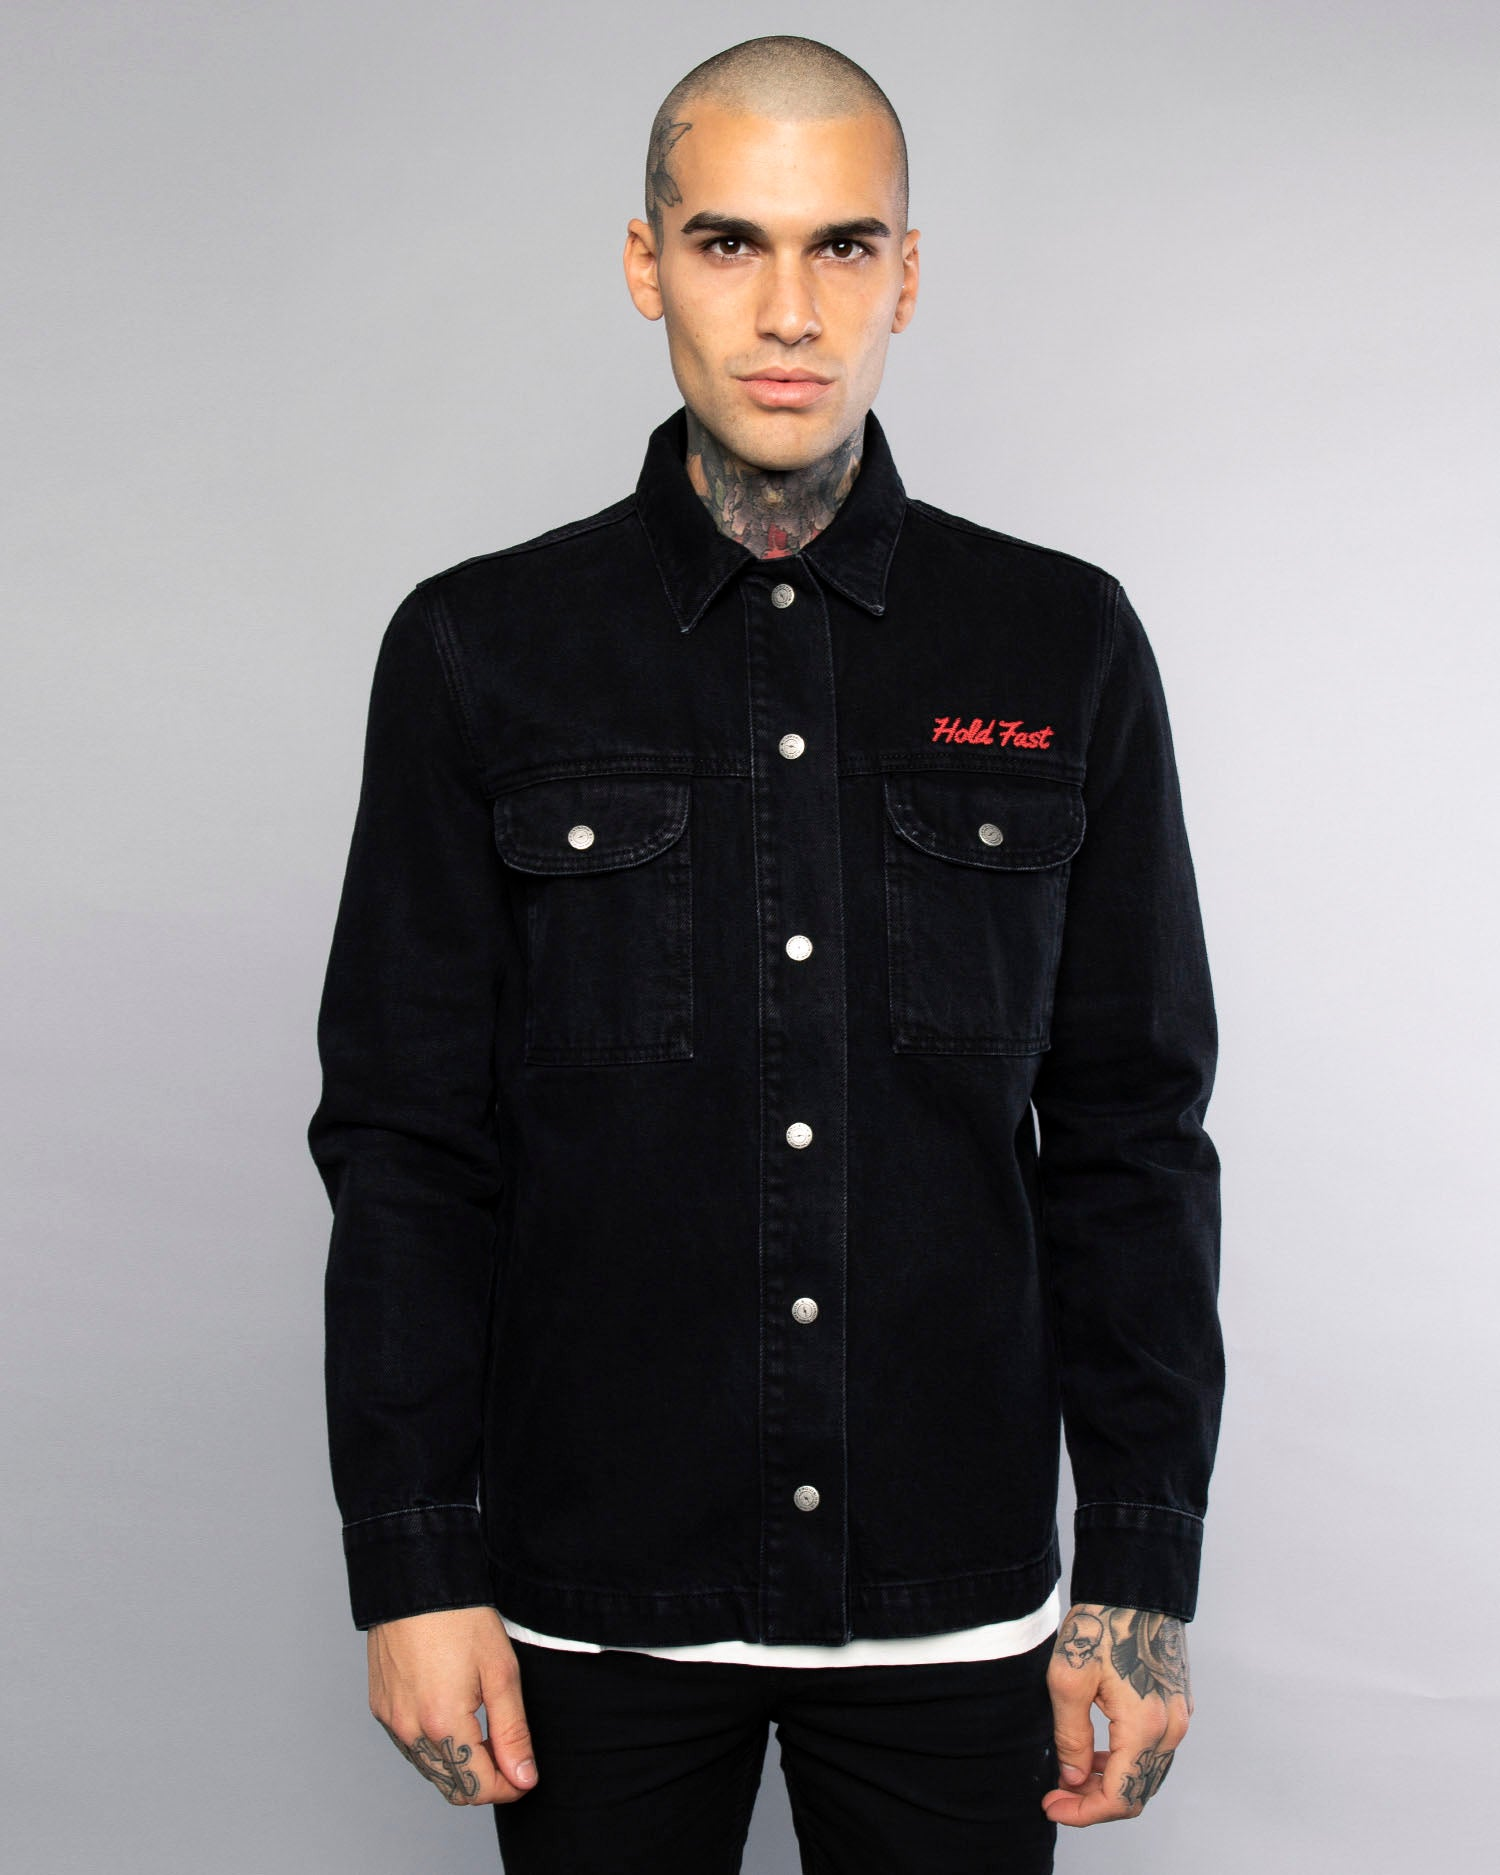 Hold Fast Black Embroidered Overshirt